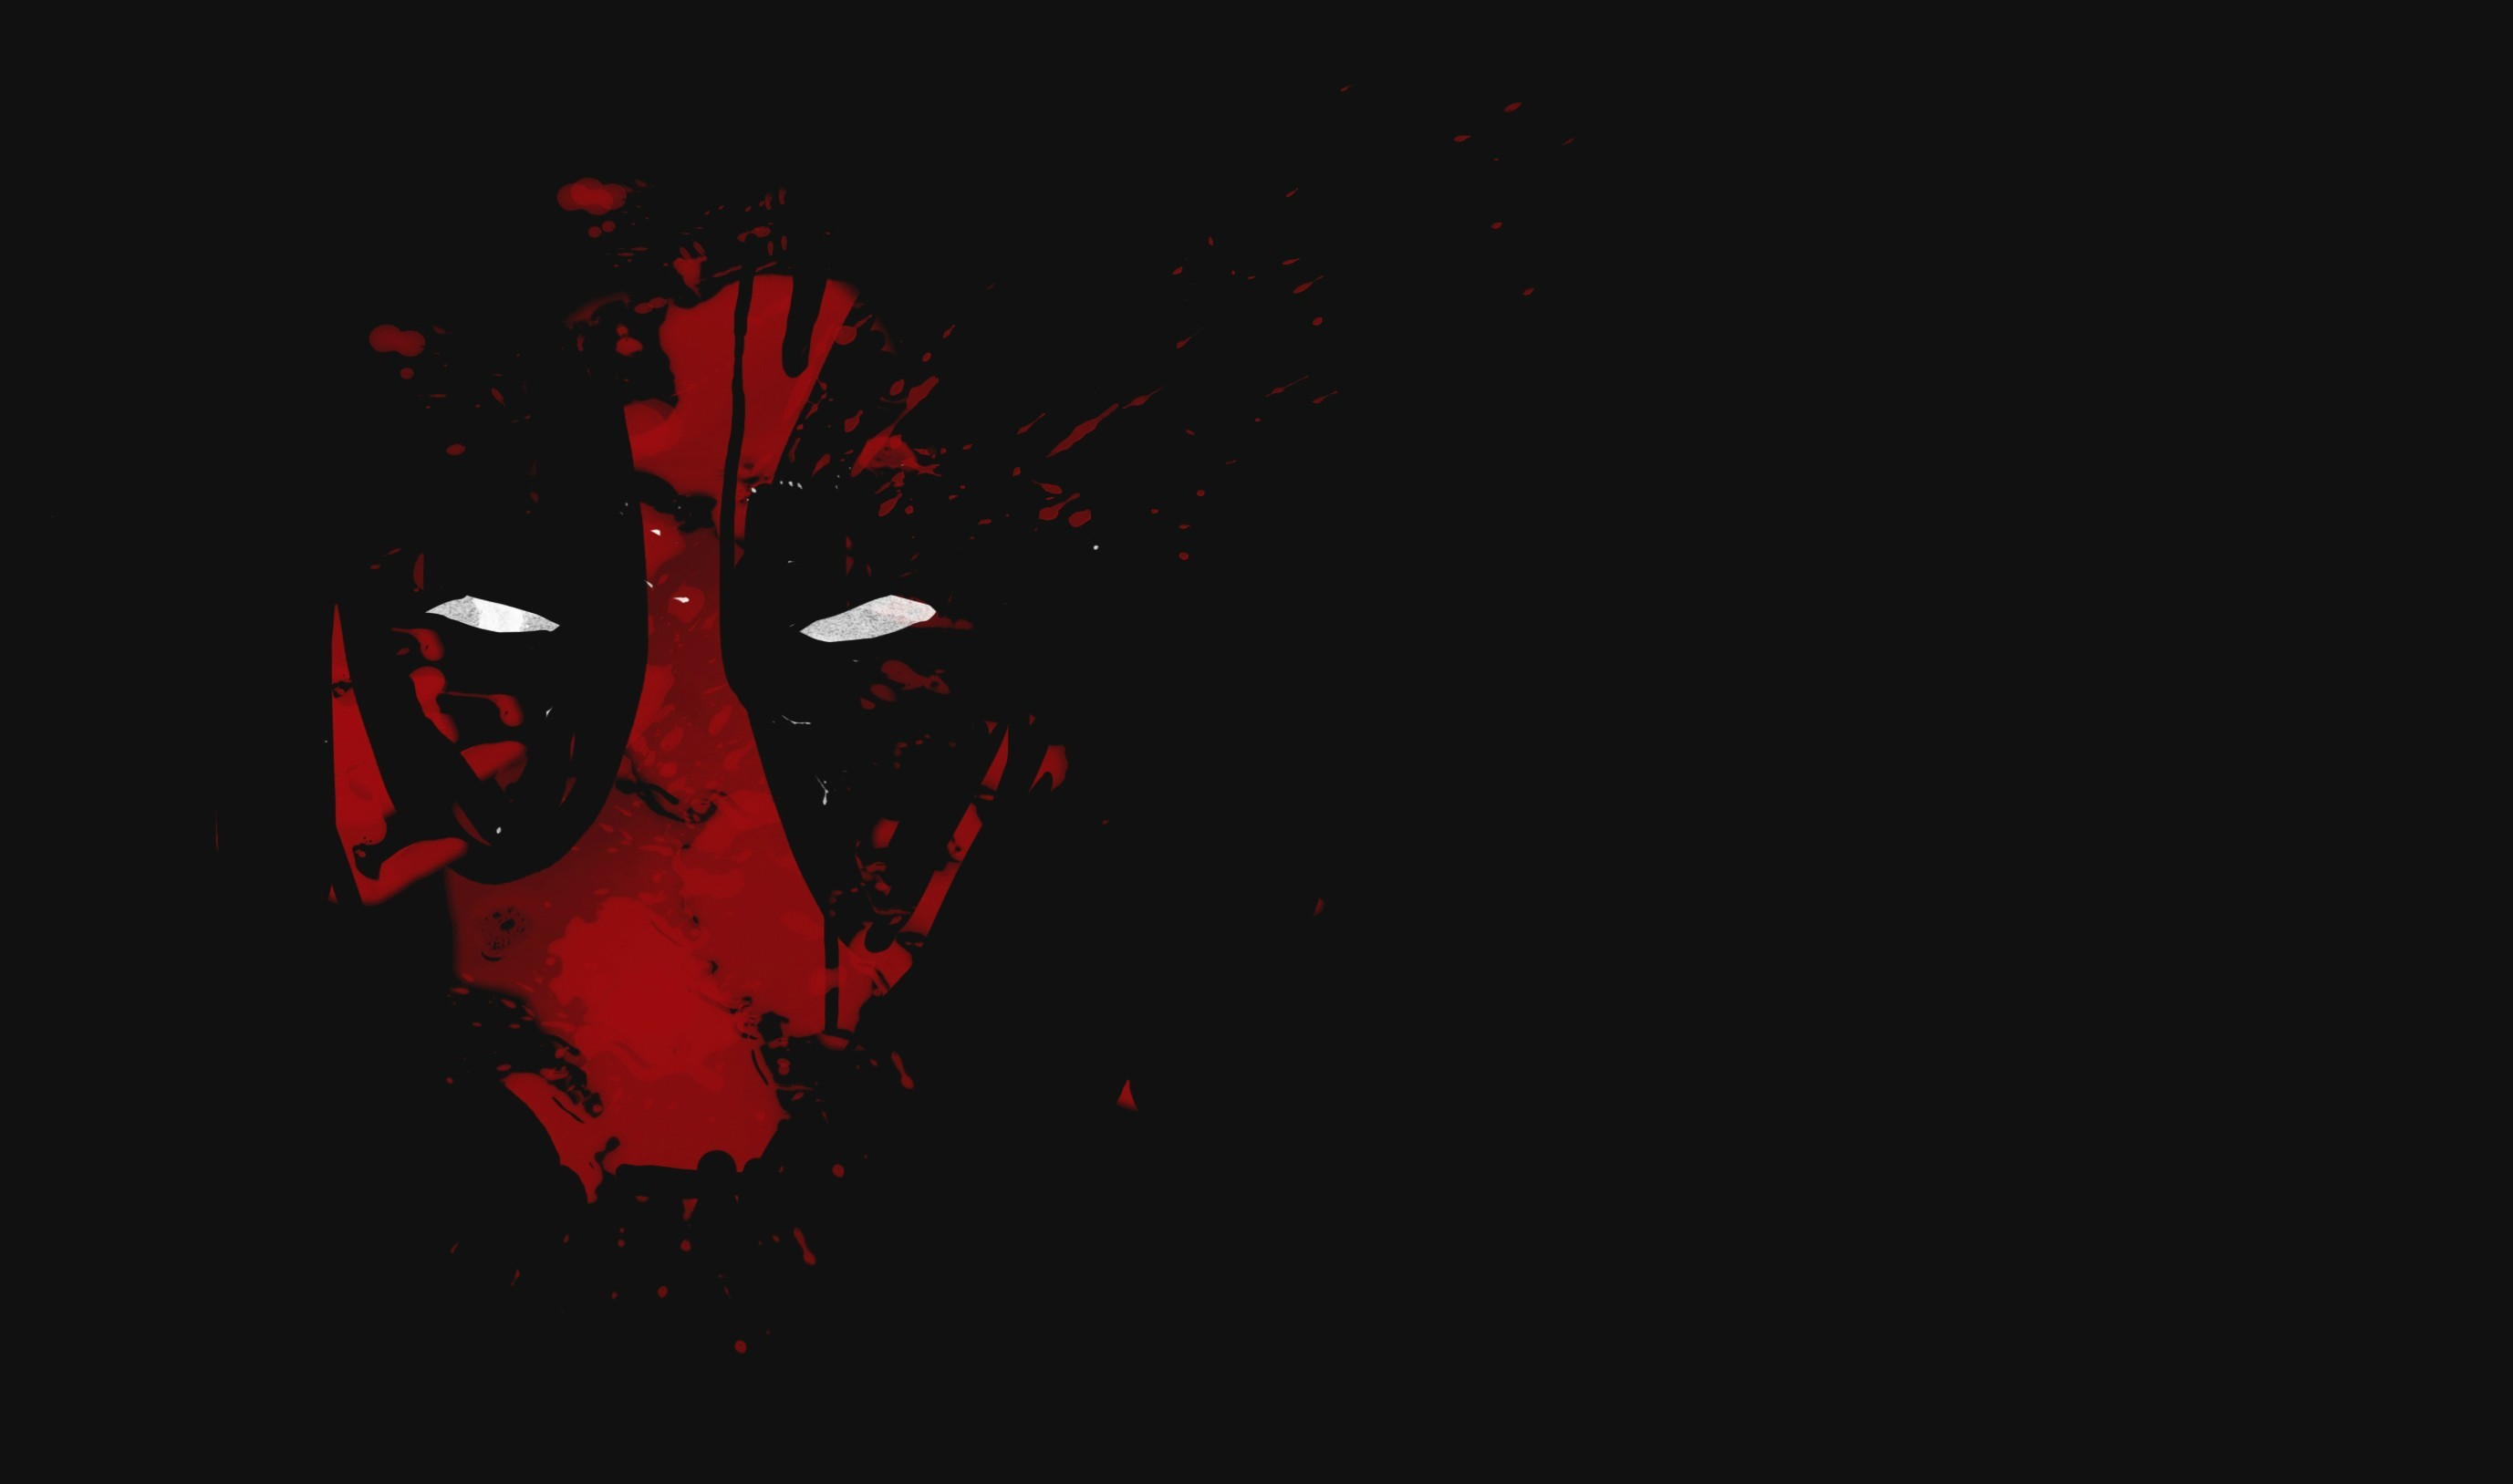 Deadpool Wallpaper 1080p 73 Images